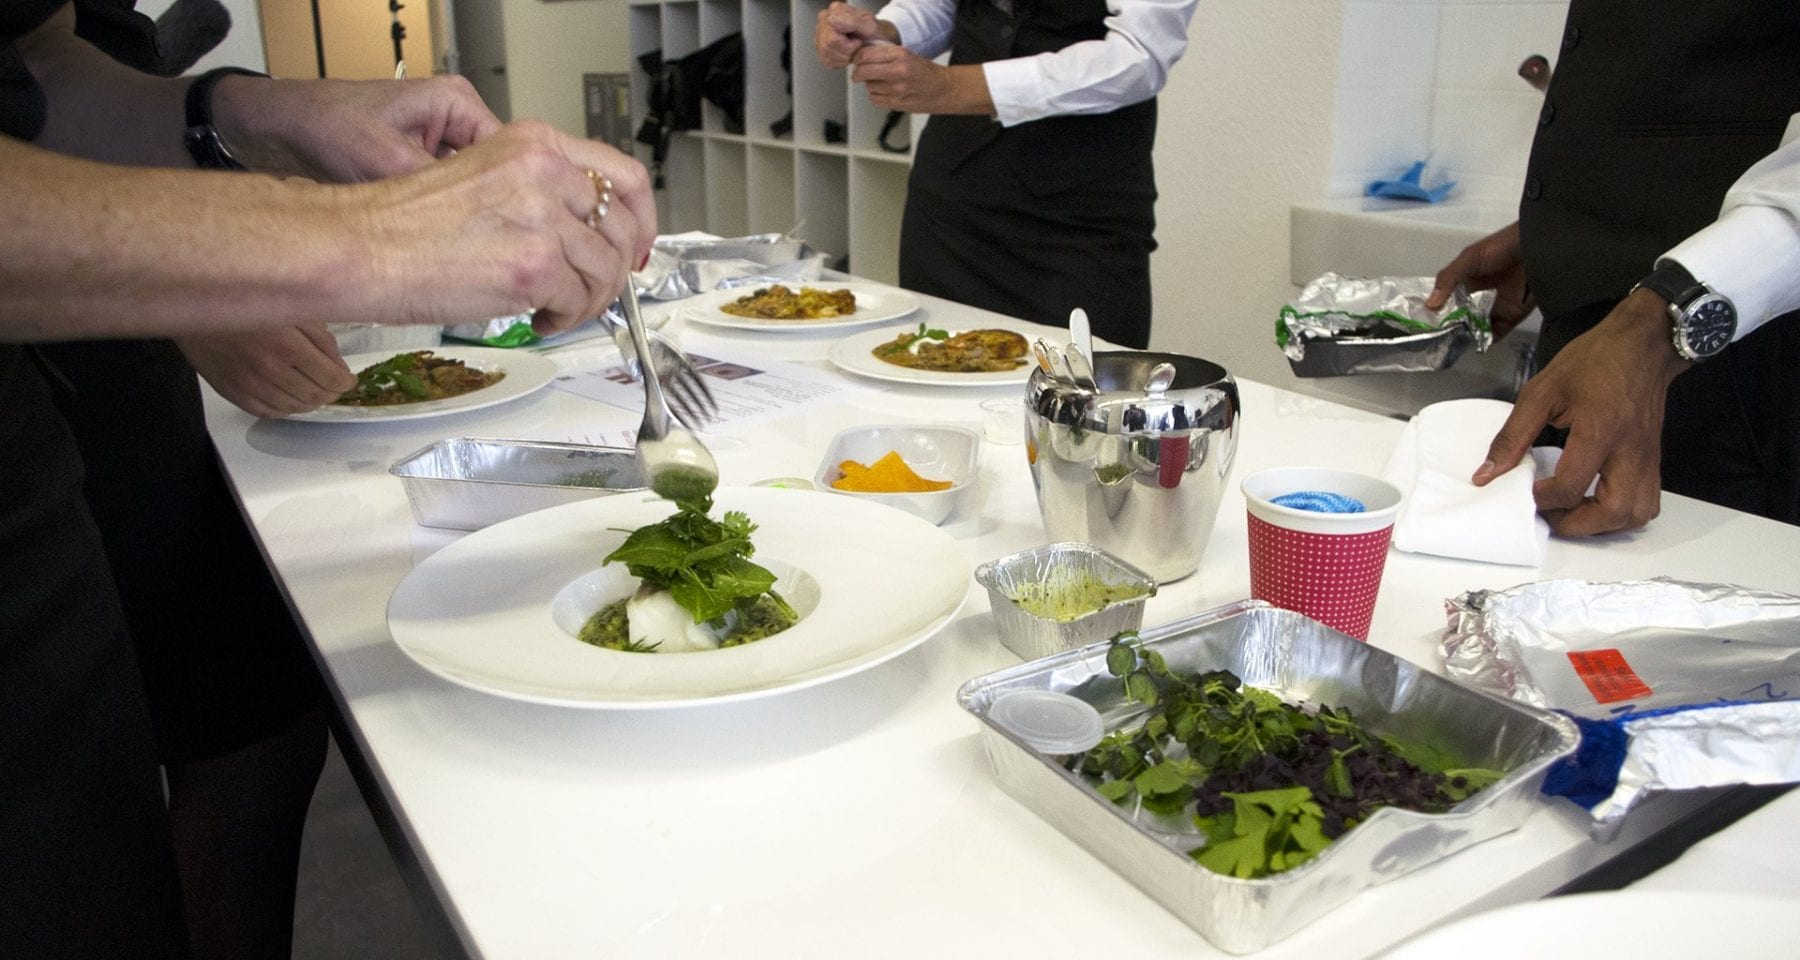 Swiss cabin crew plating up salads for first class guests